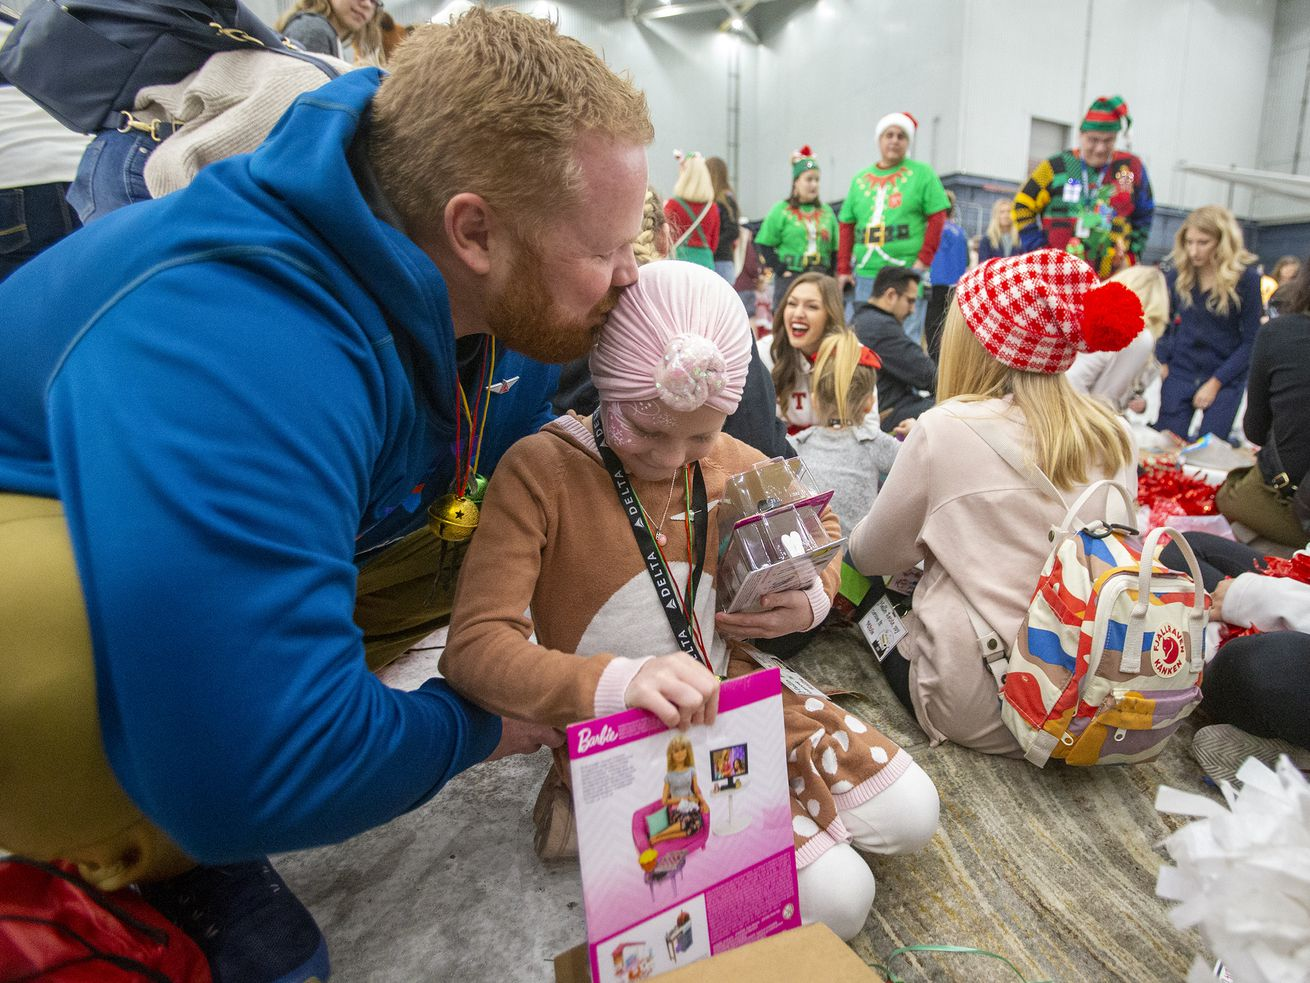 Patients from Utah children's hospitals board plane to Santa's Winter Wonderland